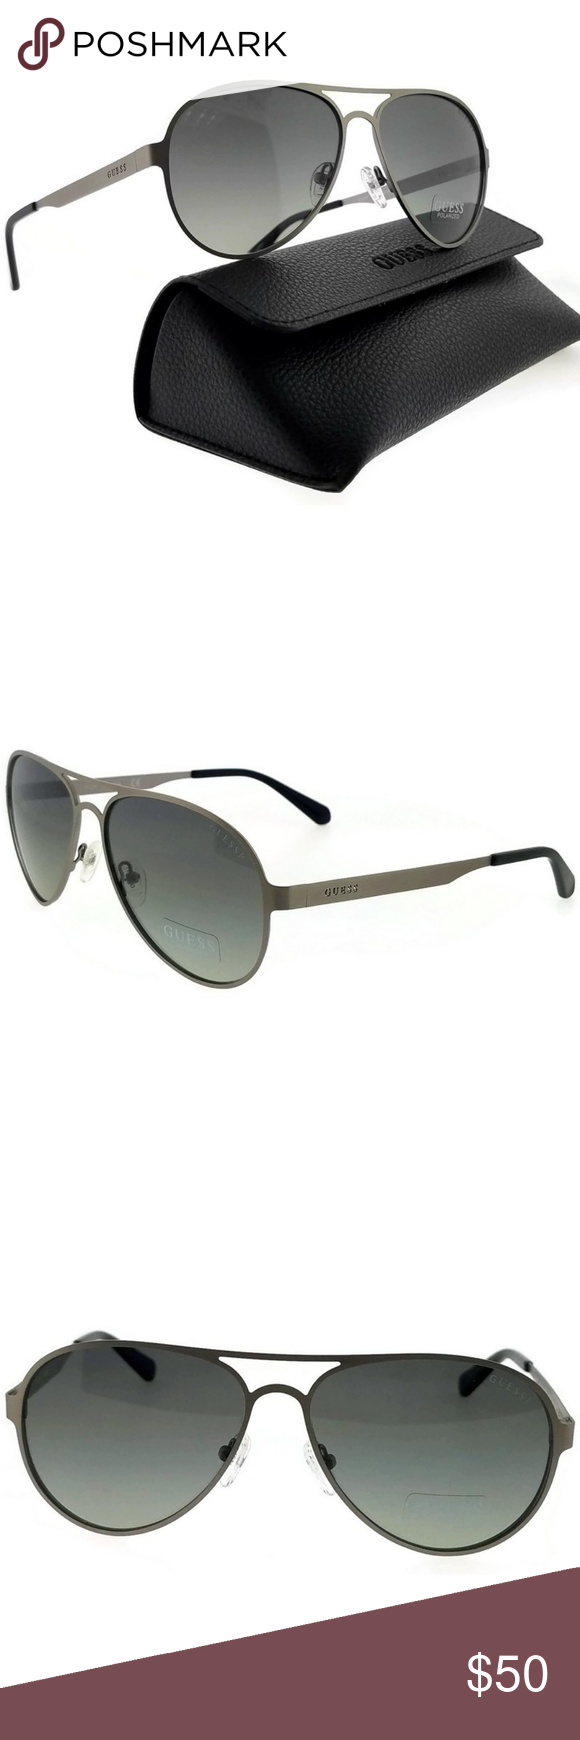 7c22915bf2 GU6897-09R-57 Guess Polarized Sunglasses New gorgeous authentic Guess GU6897 -09R-